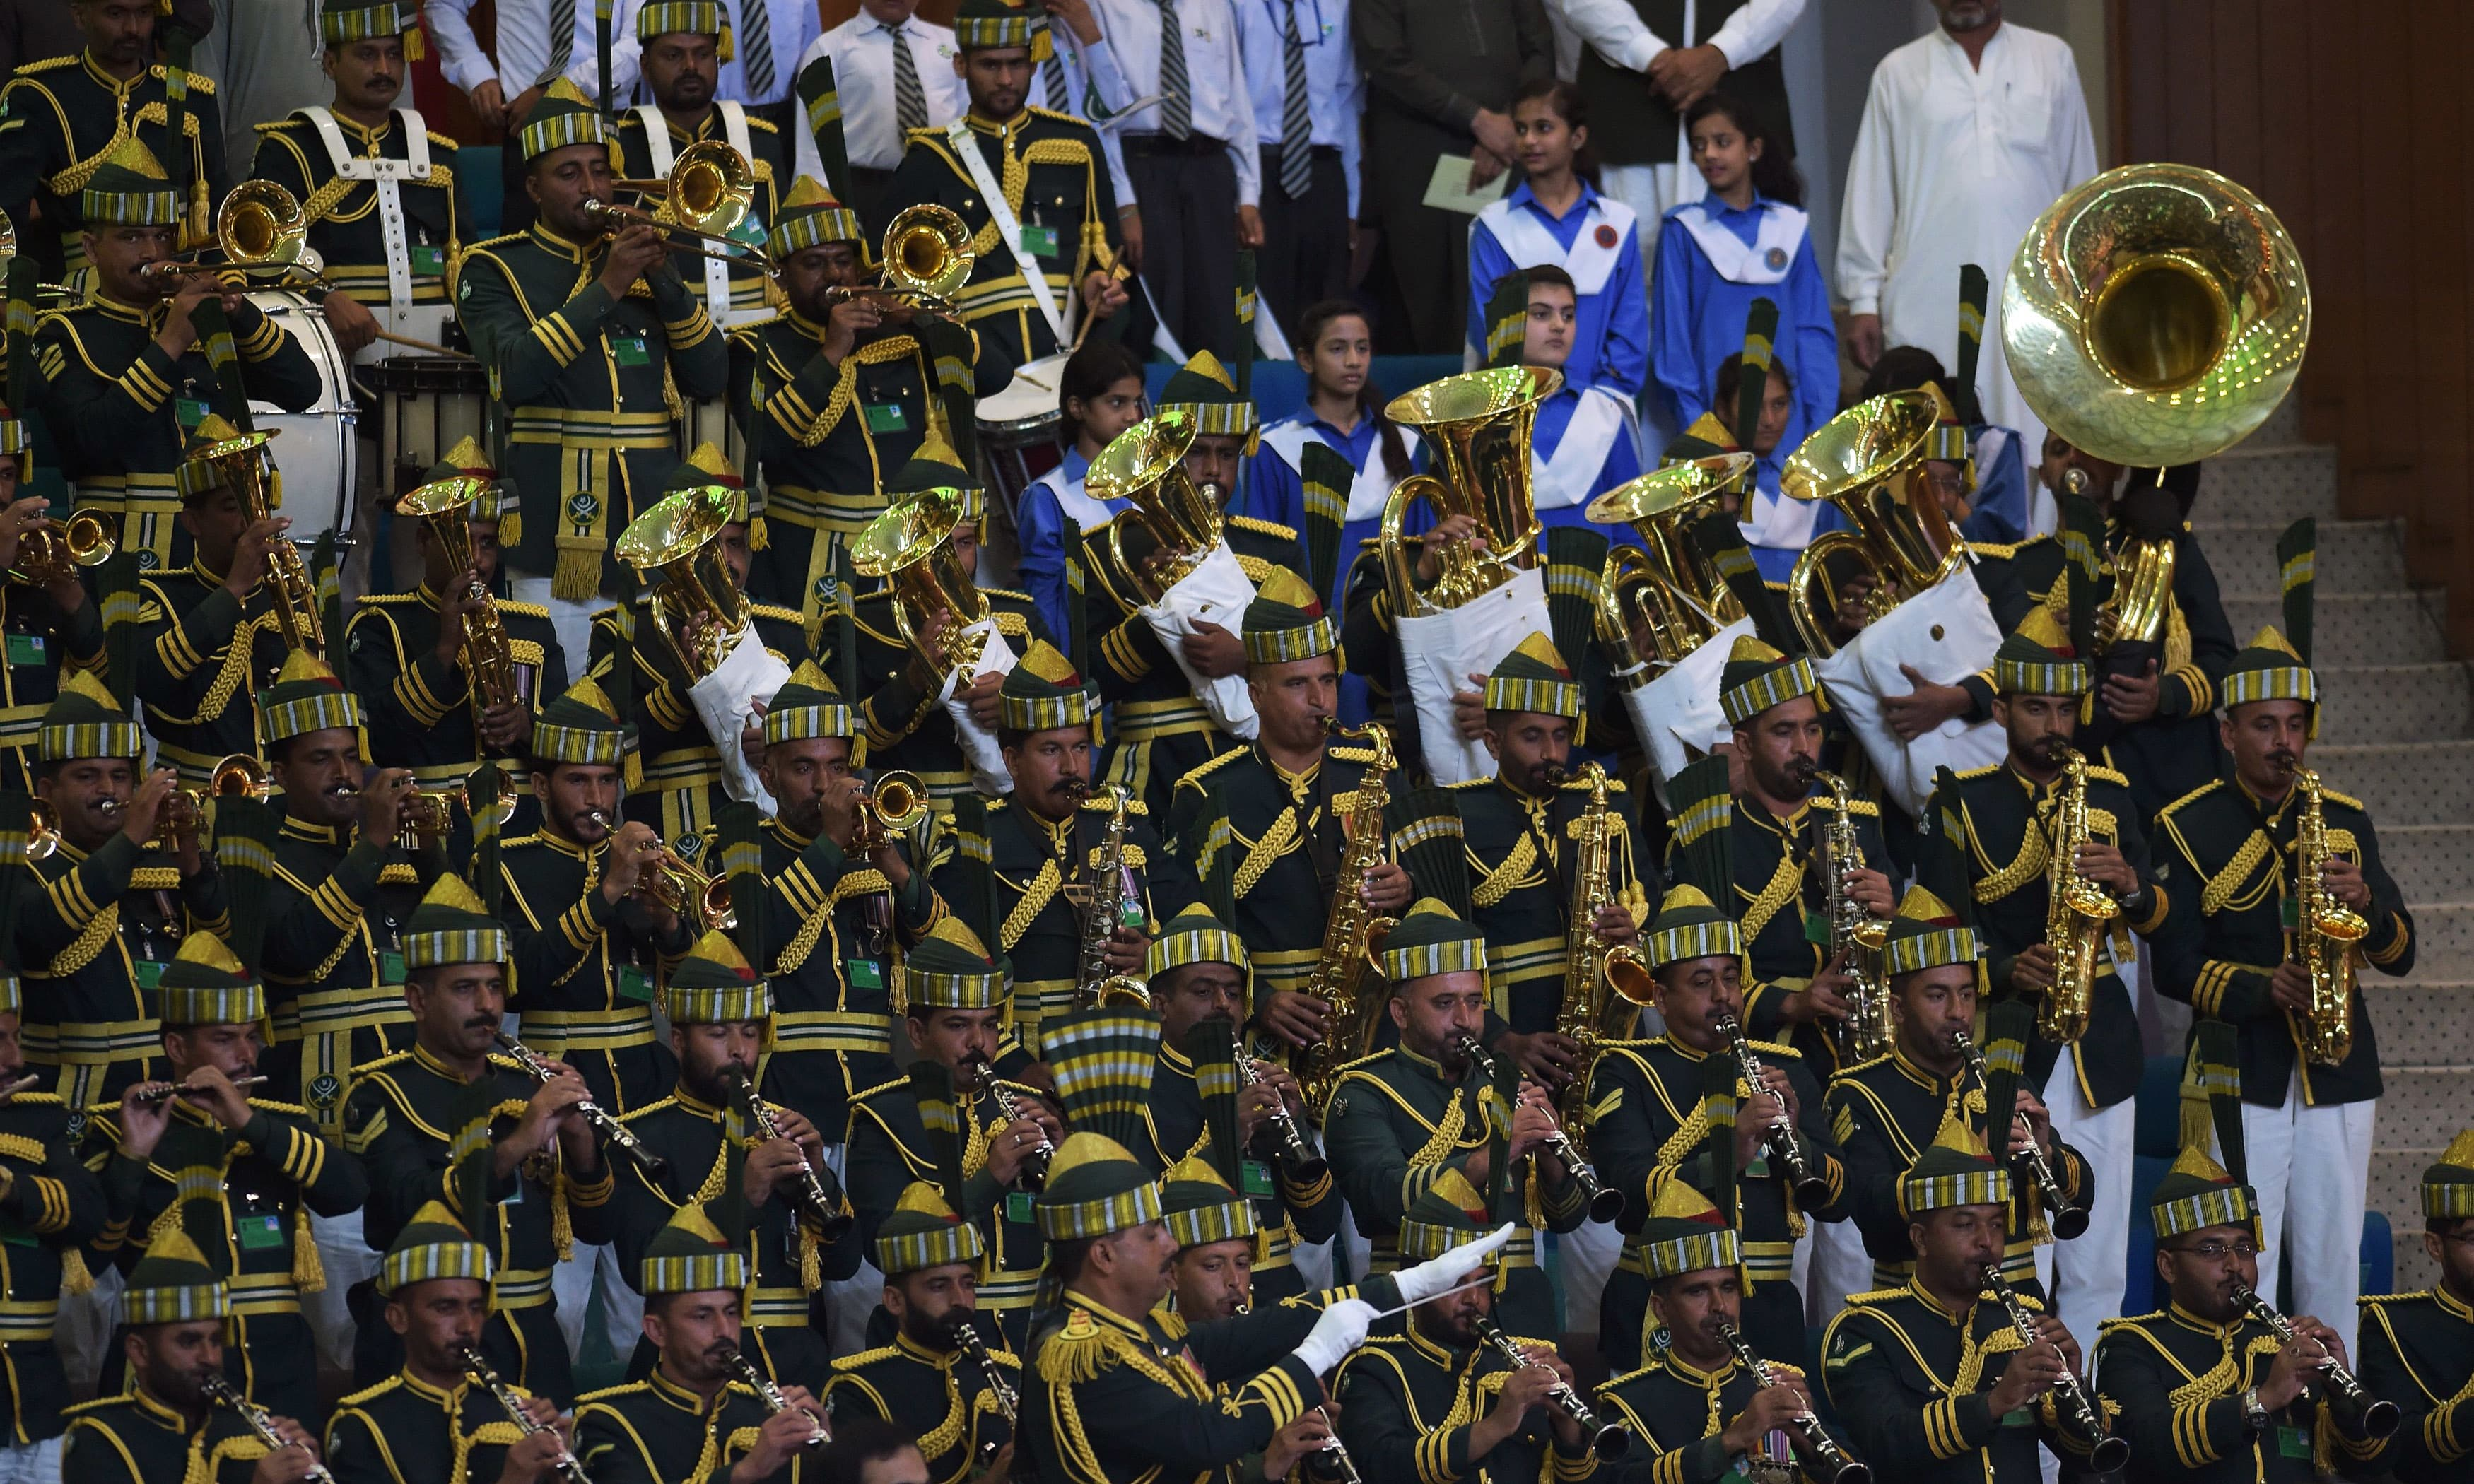 A military band performs during a flag hoisting ceremony. —AFP